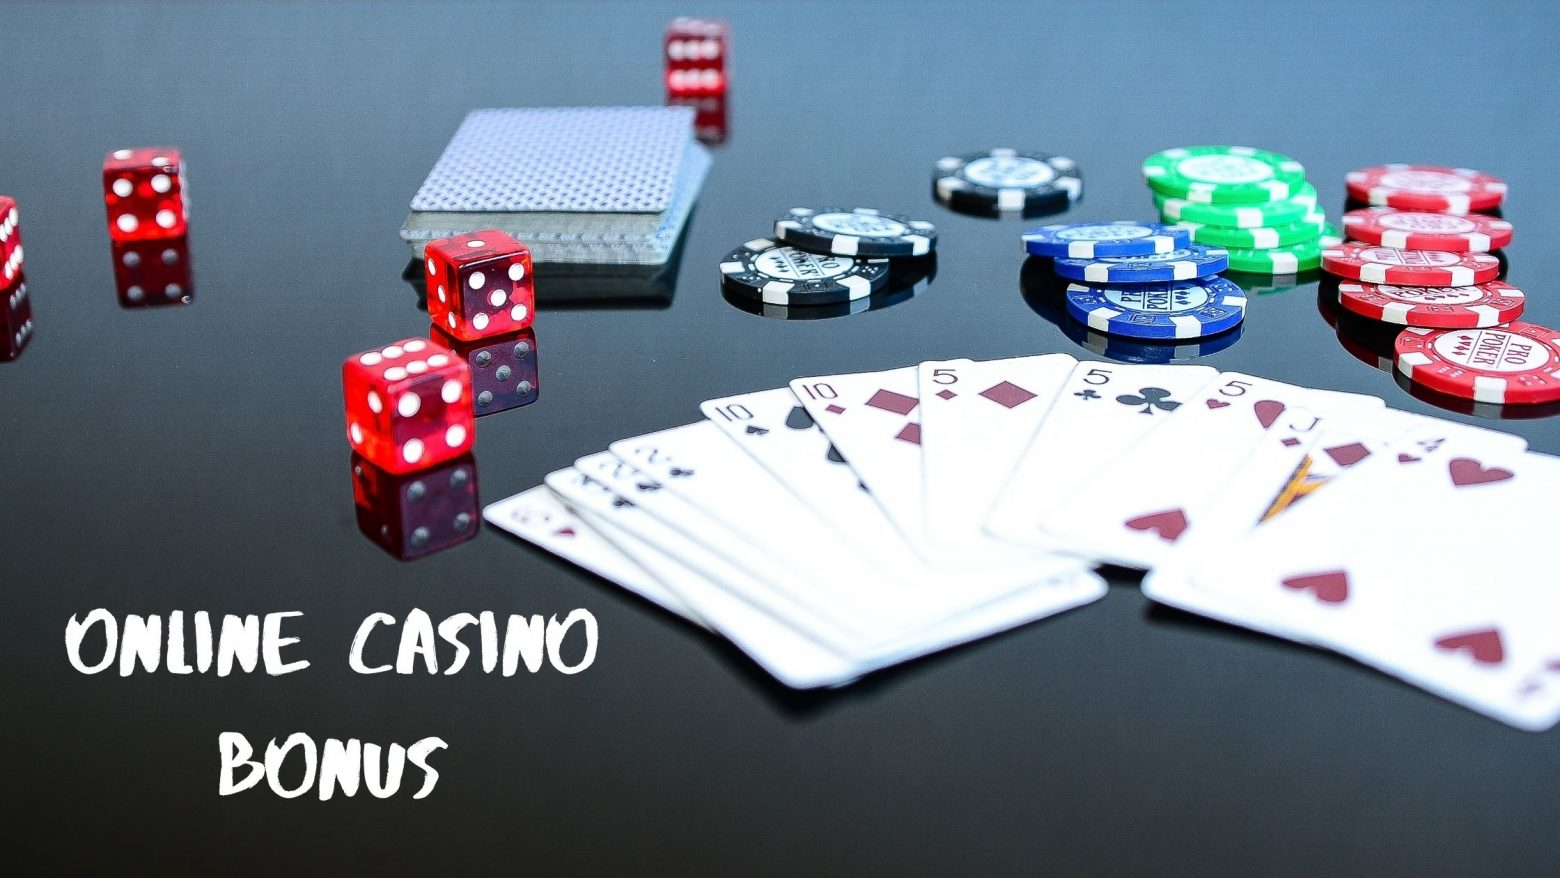 Online Casino Bonus Basic Information You Need To Know